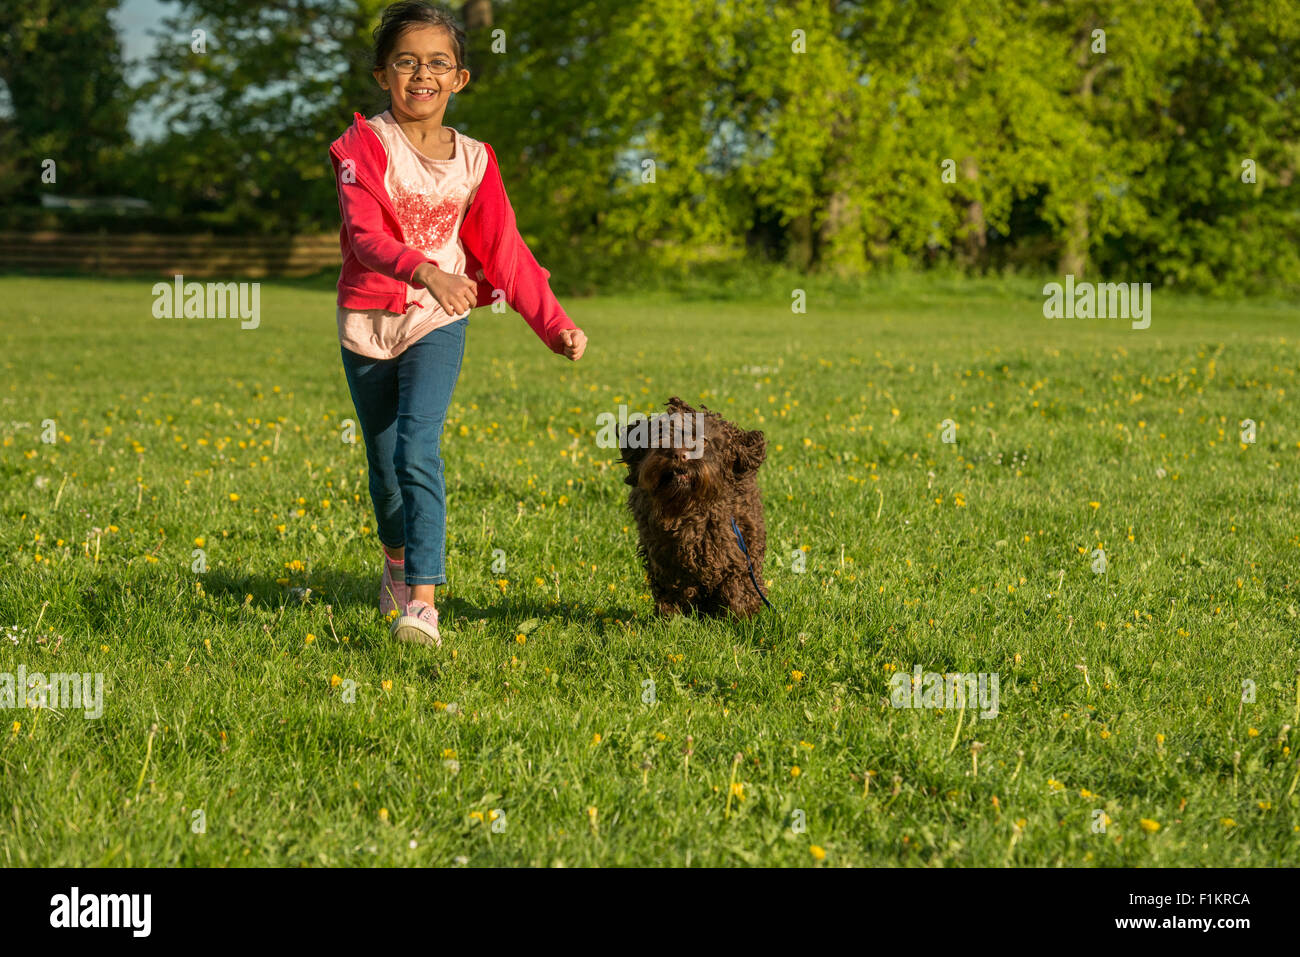 A young girl running with her Cockerpoo in a park. - Stock Image